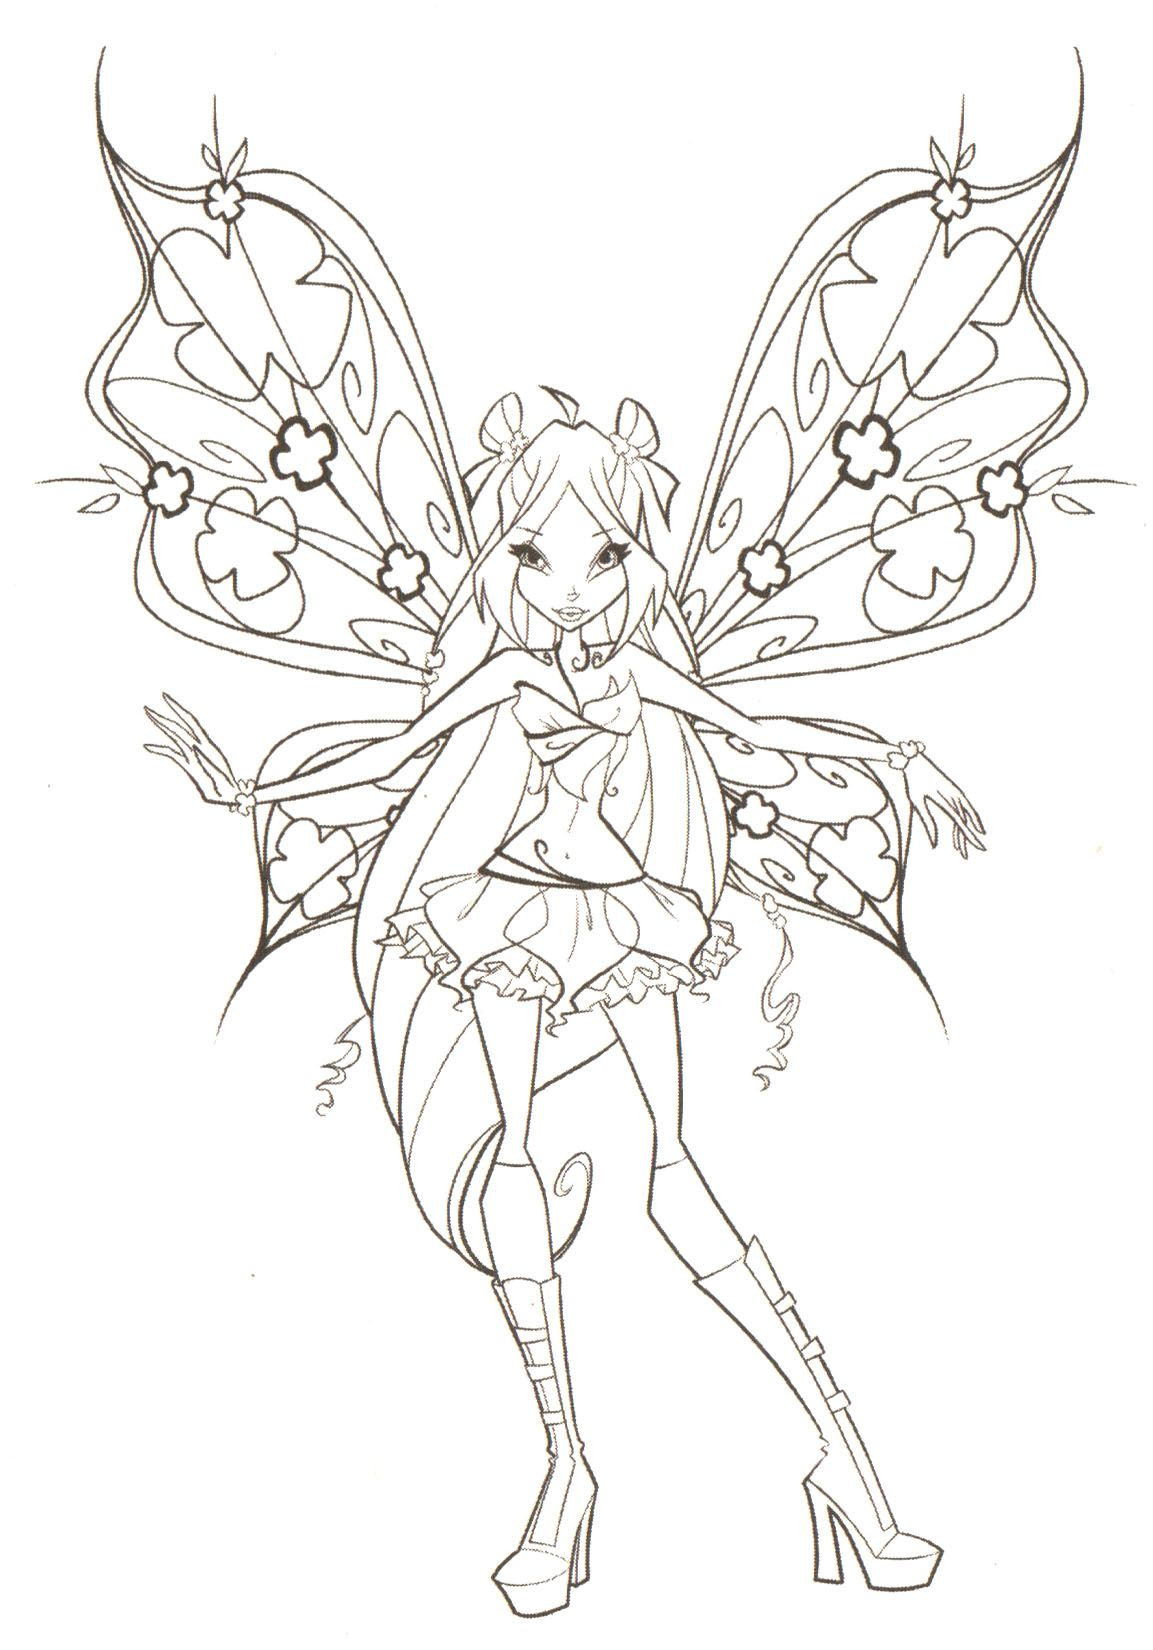 Kleurplaten Winx Club Believix.Winx Club Coloring Pages Google Search Coloring People